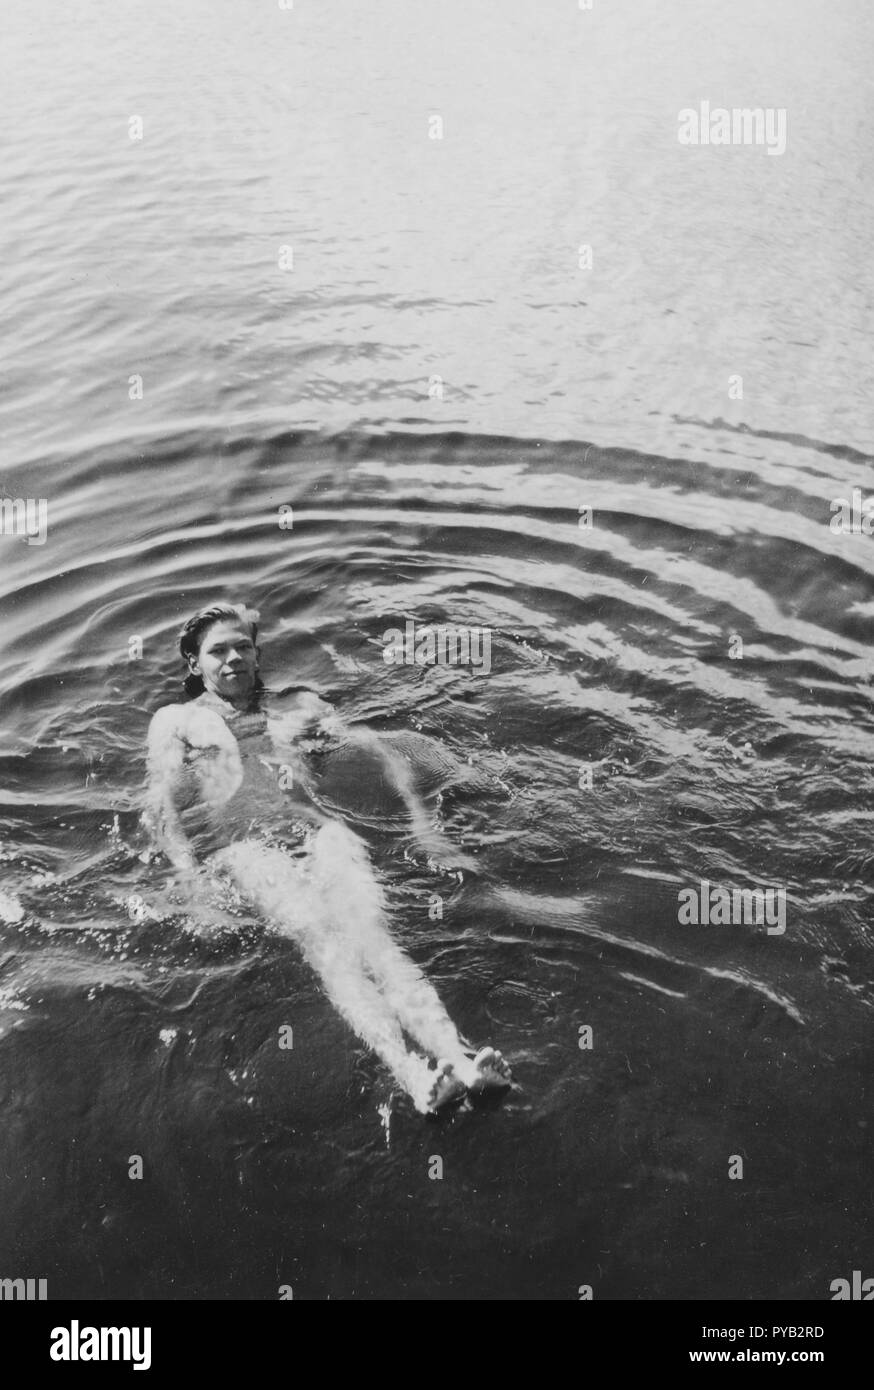 Having fun in the 1930s. A young man is having a swim. Sweden 1930s - Stock Image